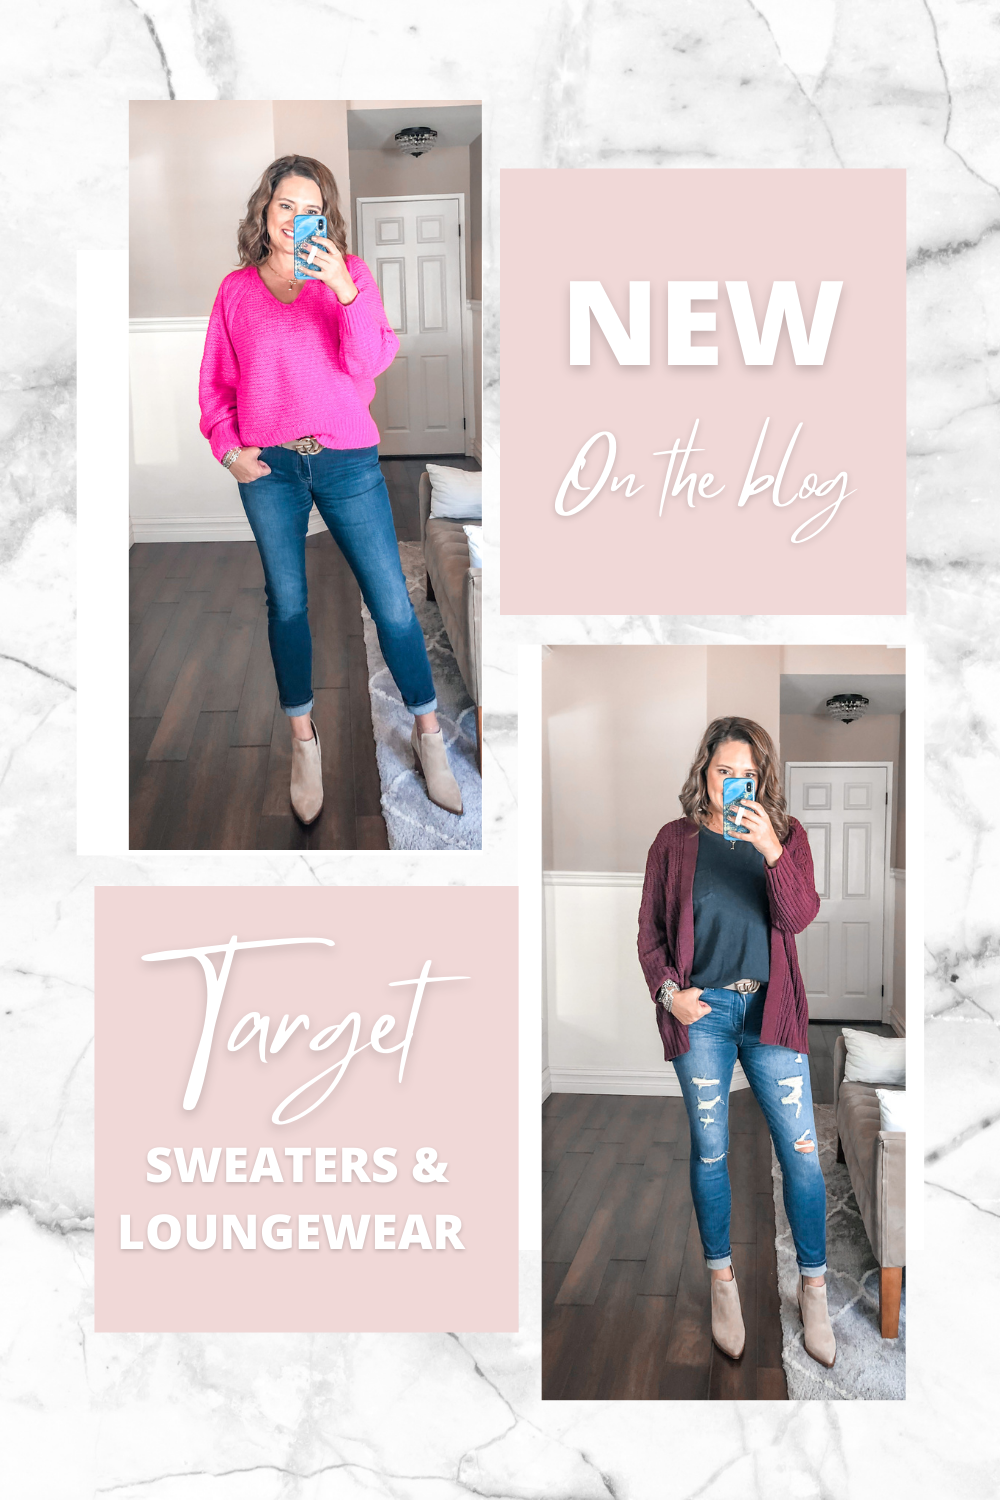 target takes all. my money. Loungewear. sweater weather. target style. target deals.